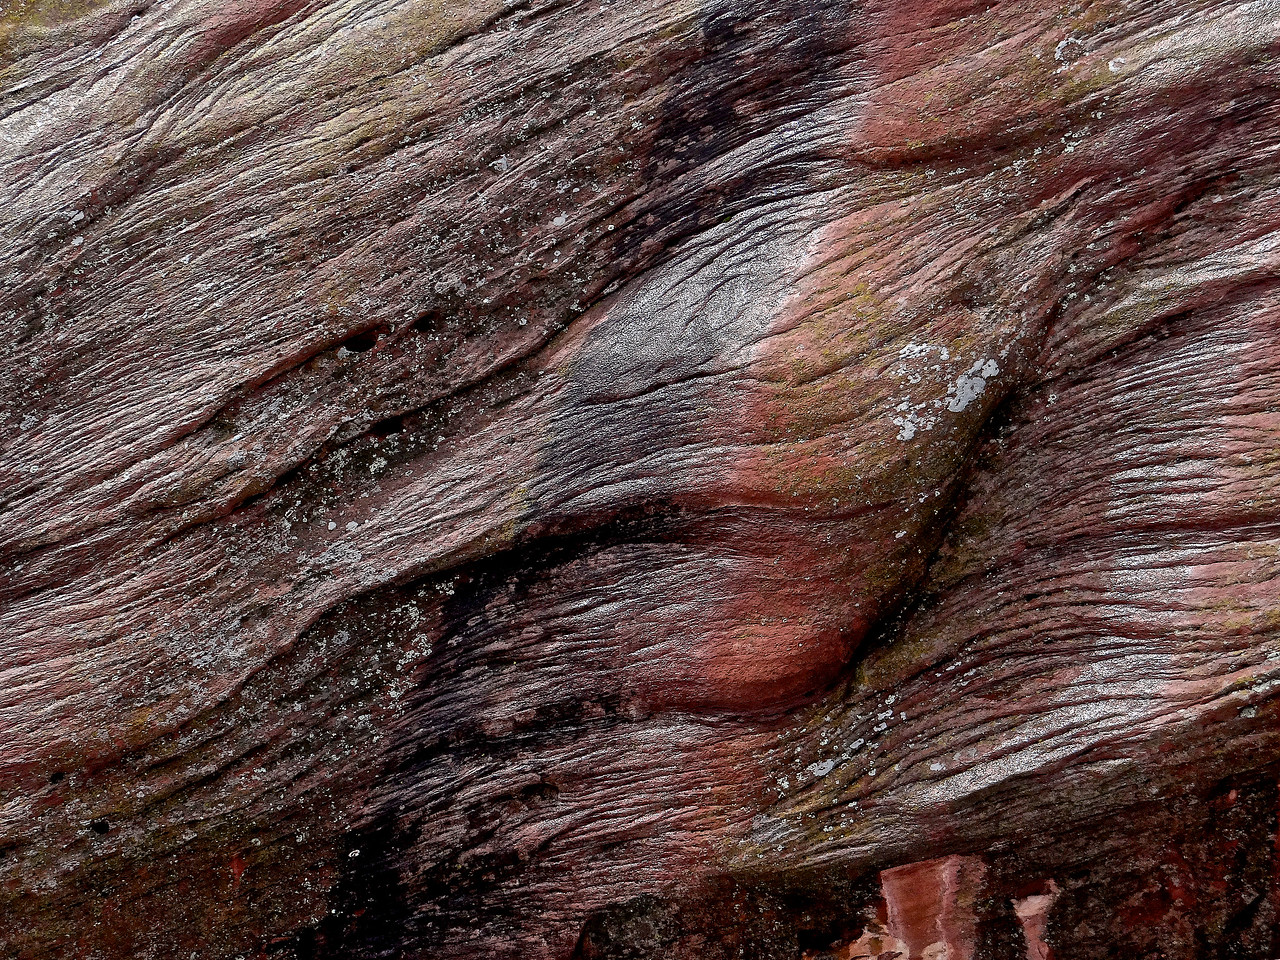 Wood grain patterns in the sandstone after a rain